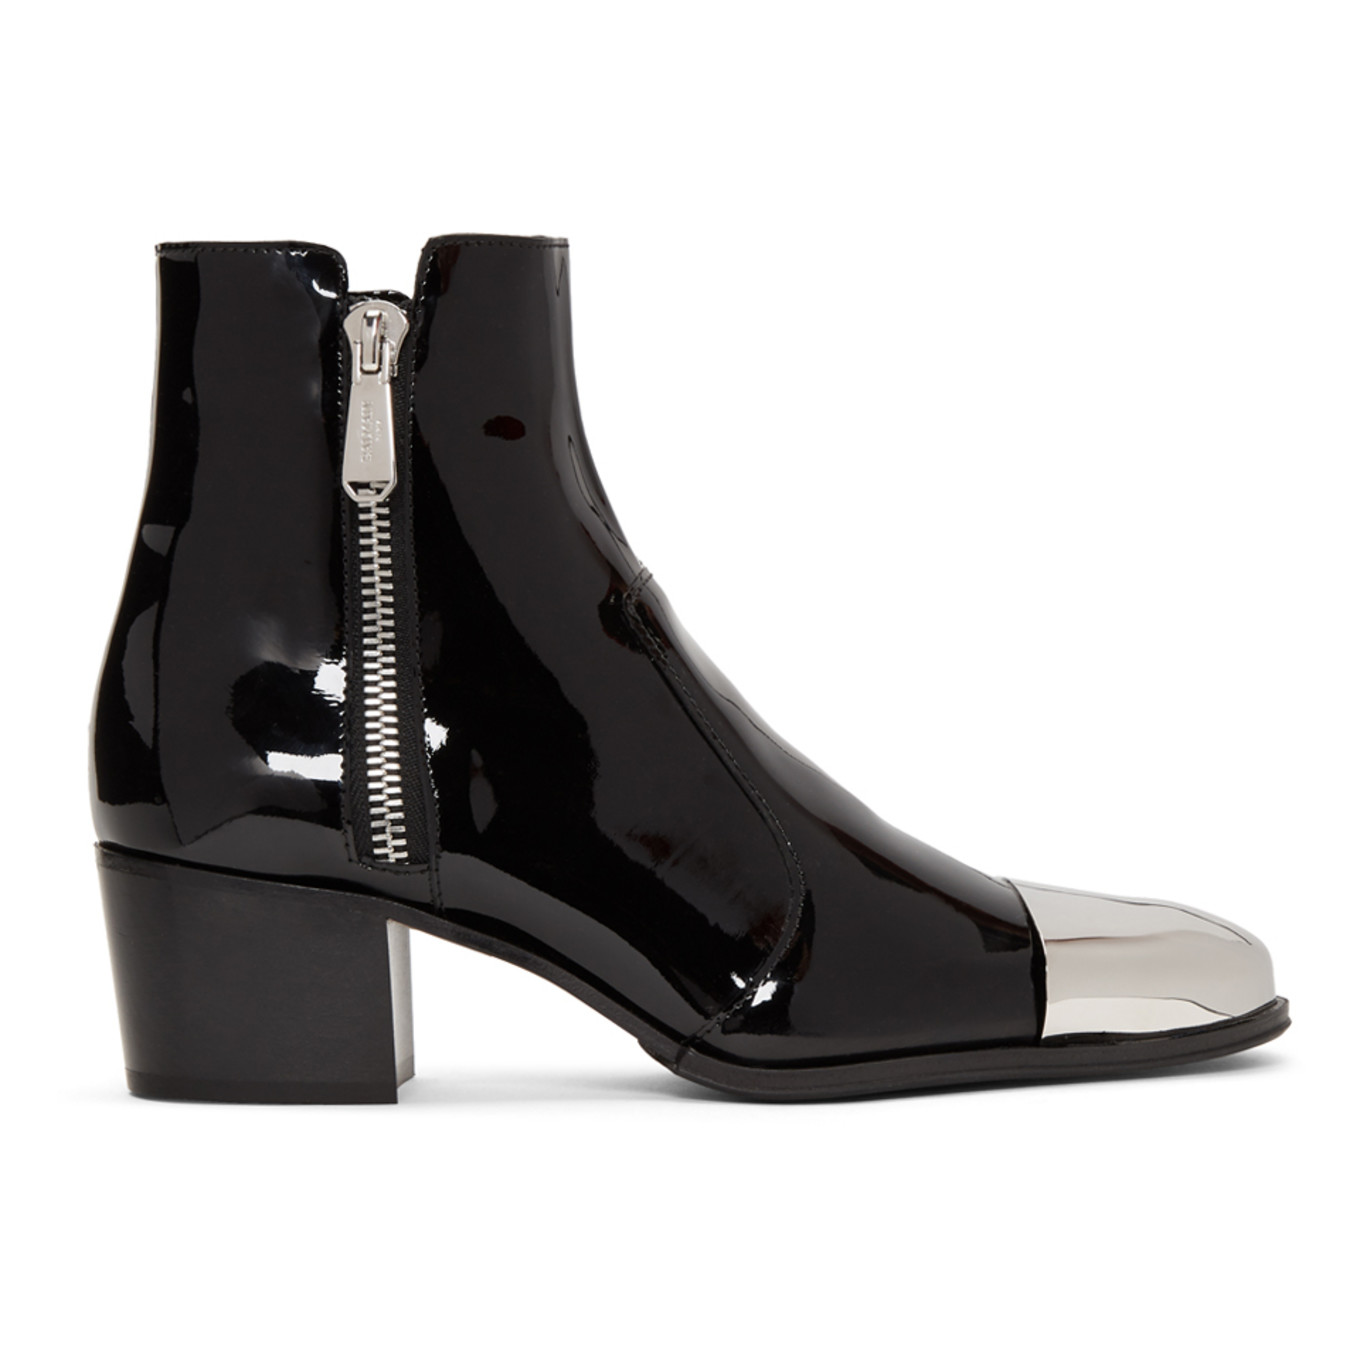 Black Patent Karen Ankle Boots by Balmain